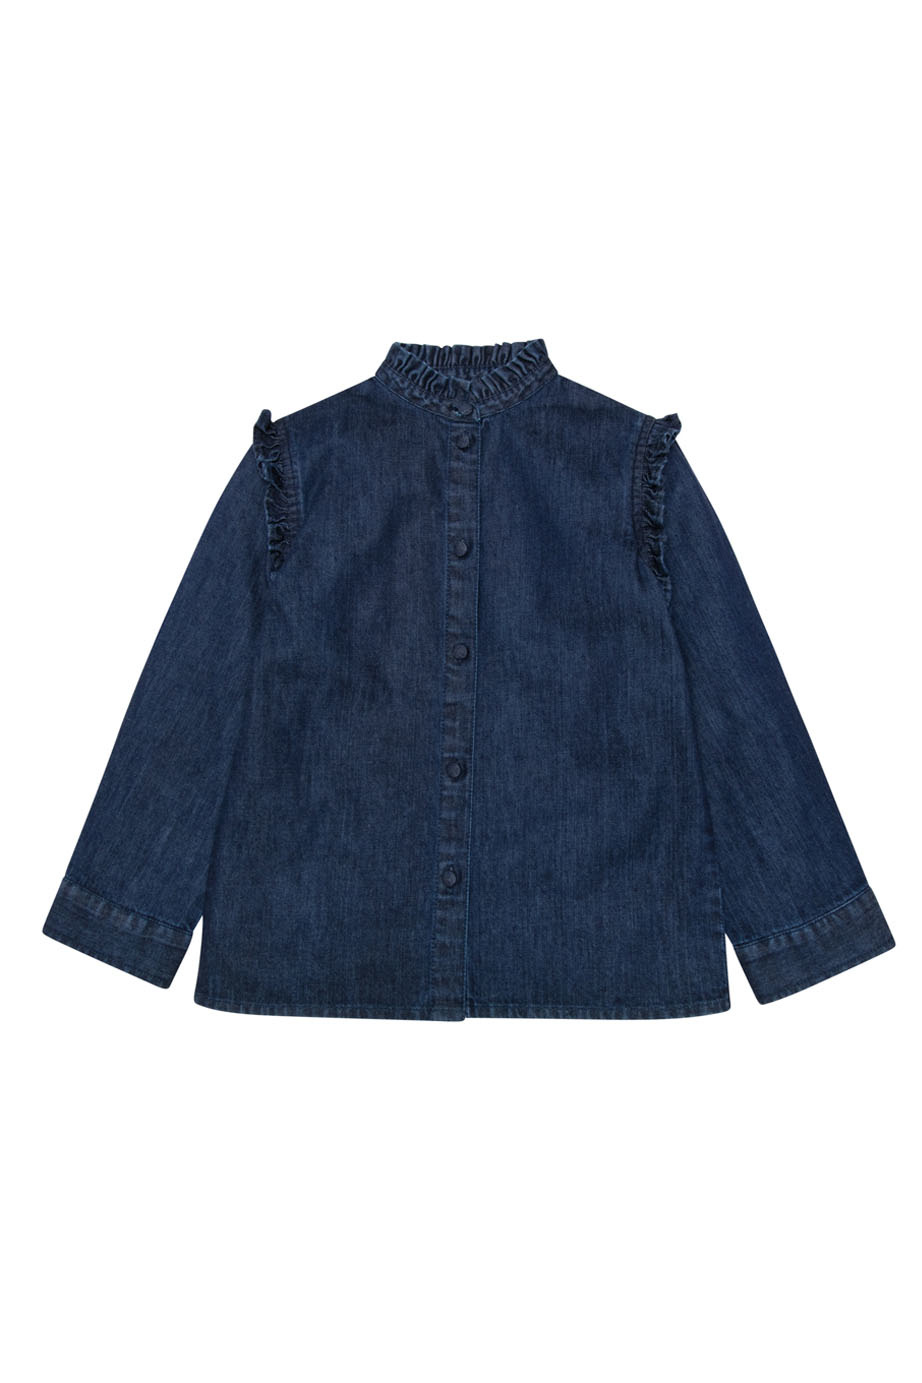 Bella denim blouse with frill-1